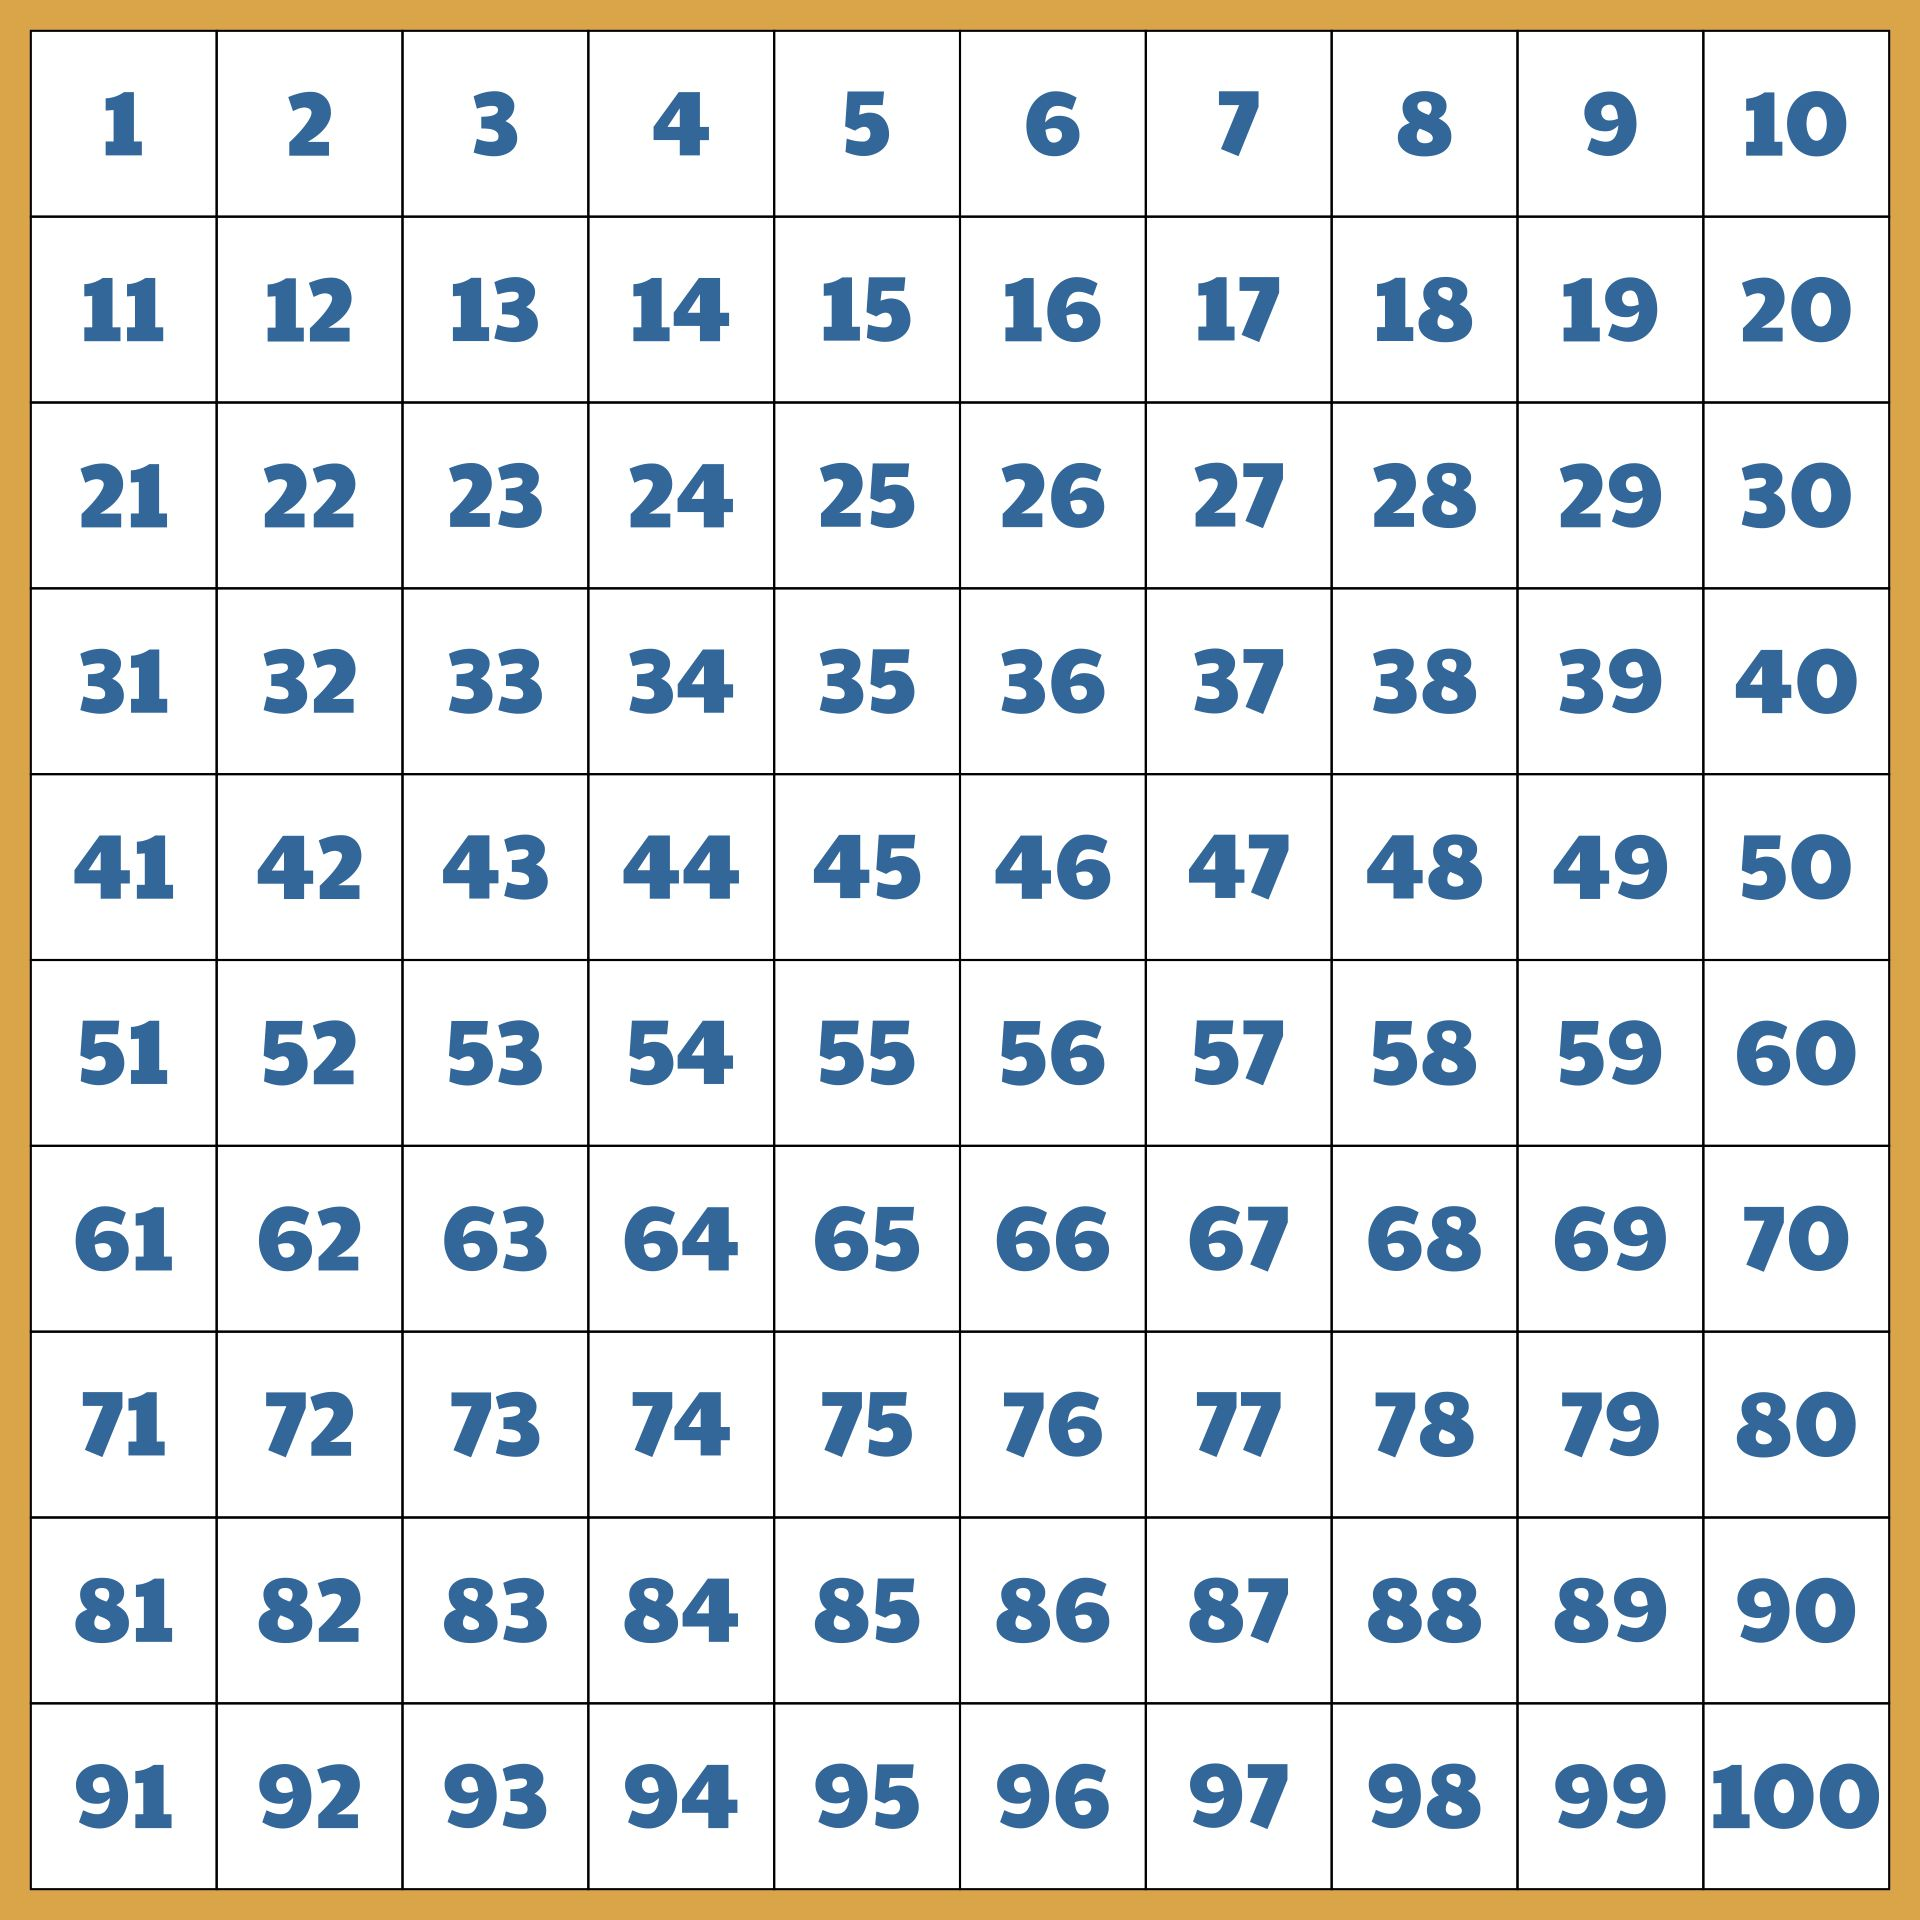 Grid with 100 Squares